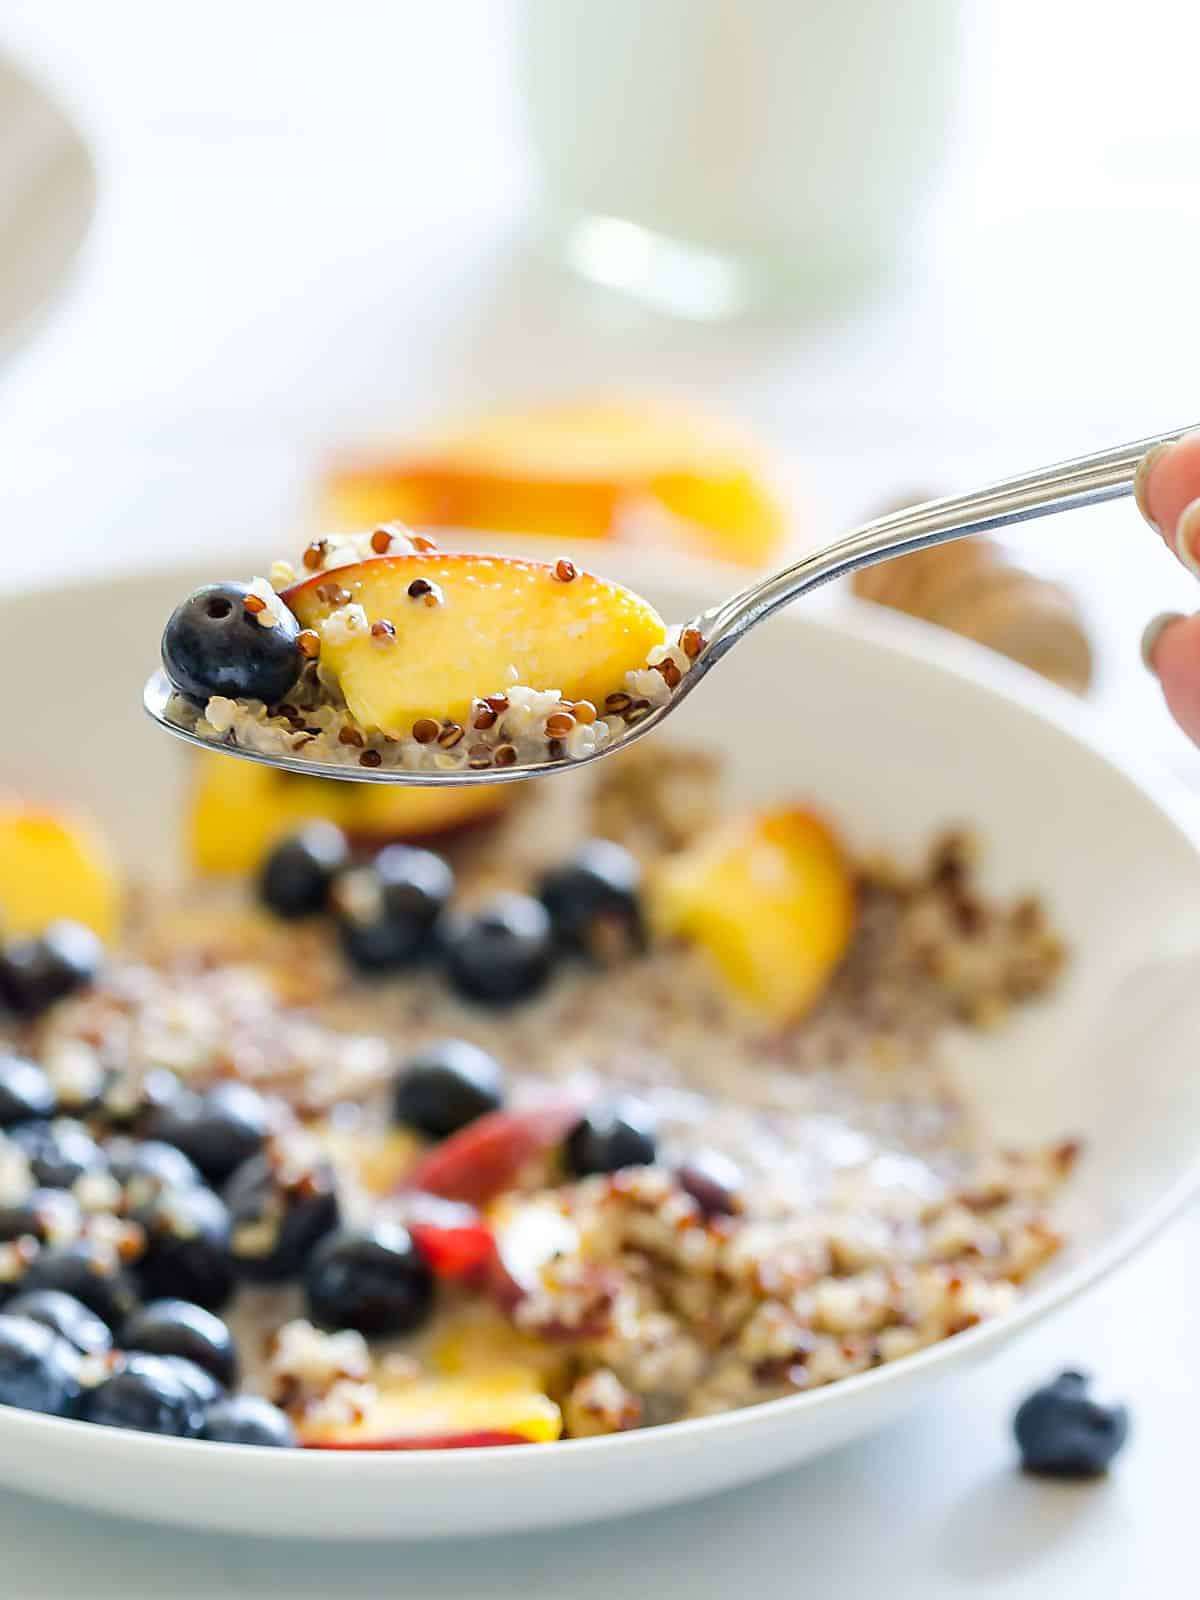 a spoon with quinoa, blueberries, a peach and milk being held above a bowl of quinoa and fruit and milk